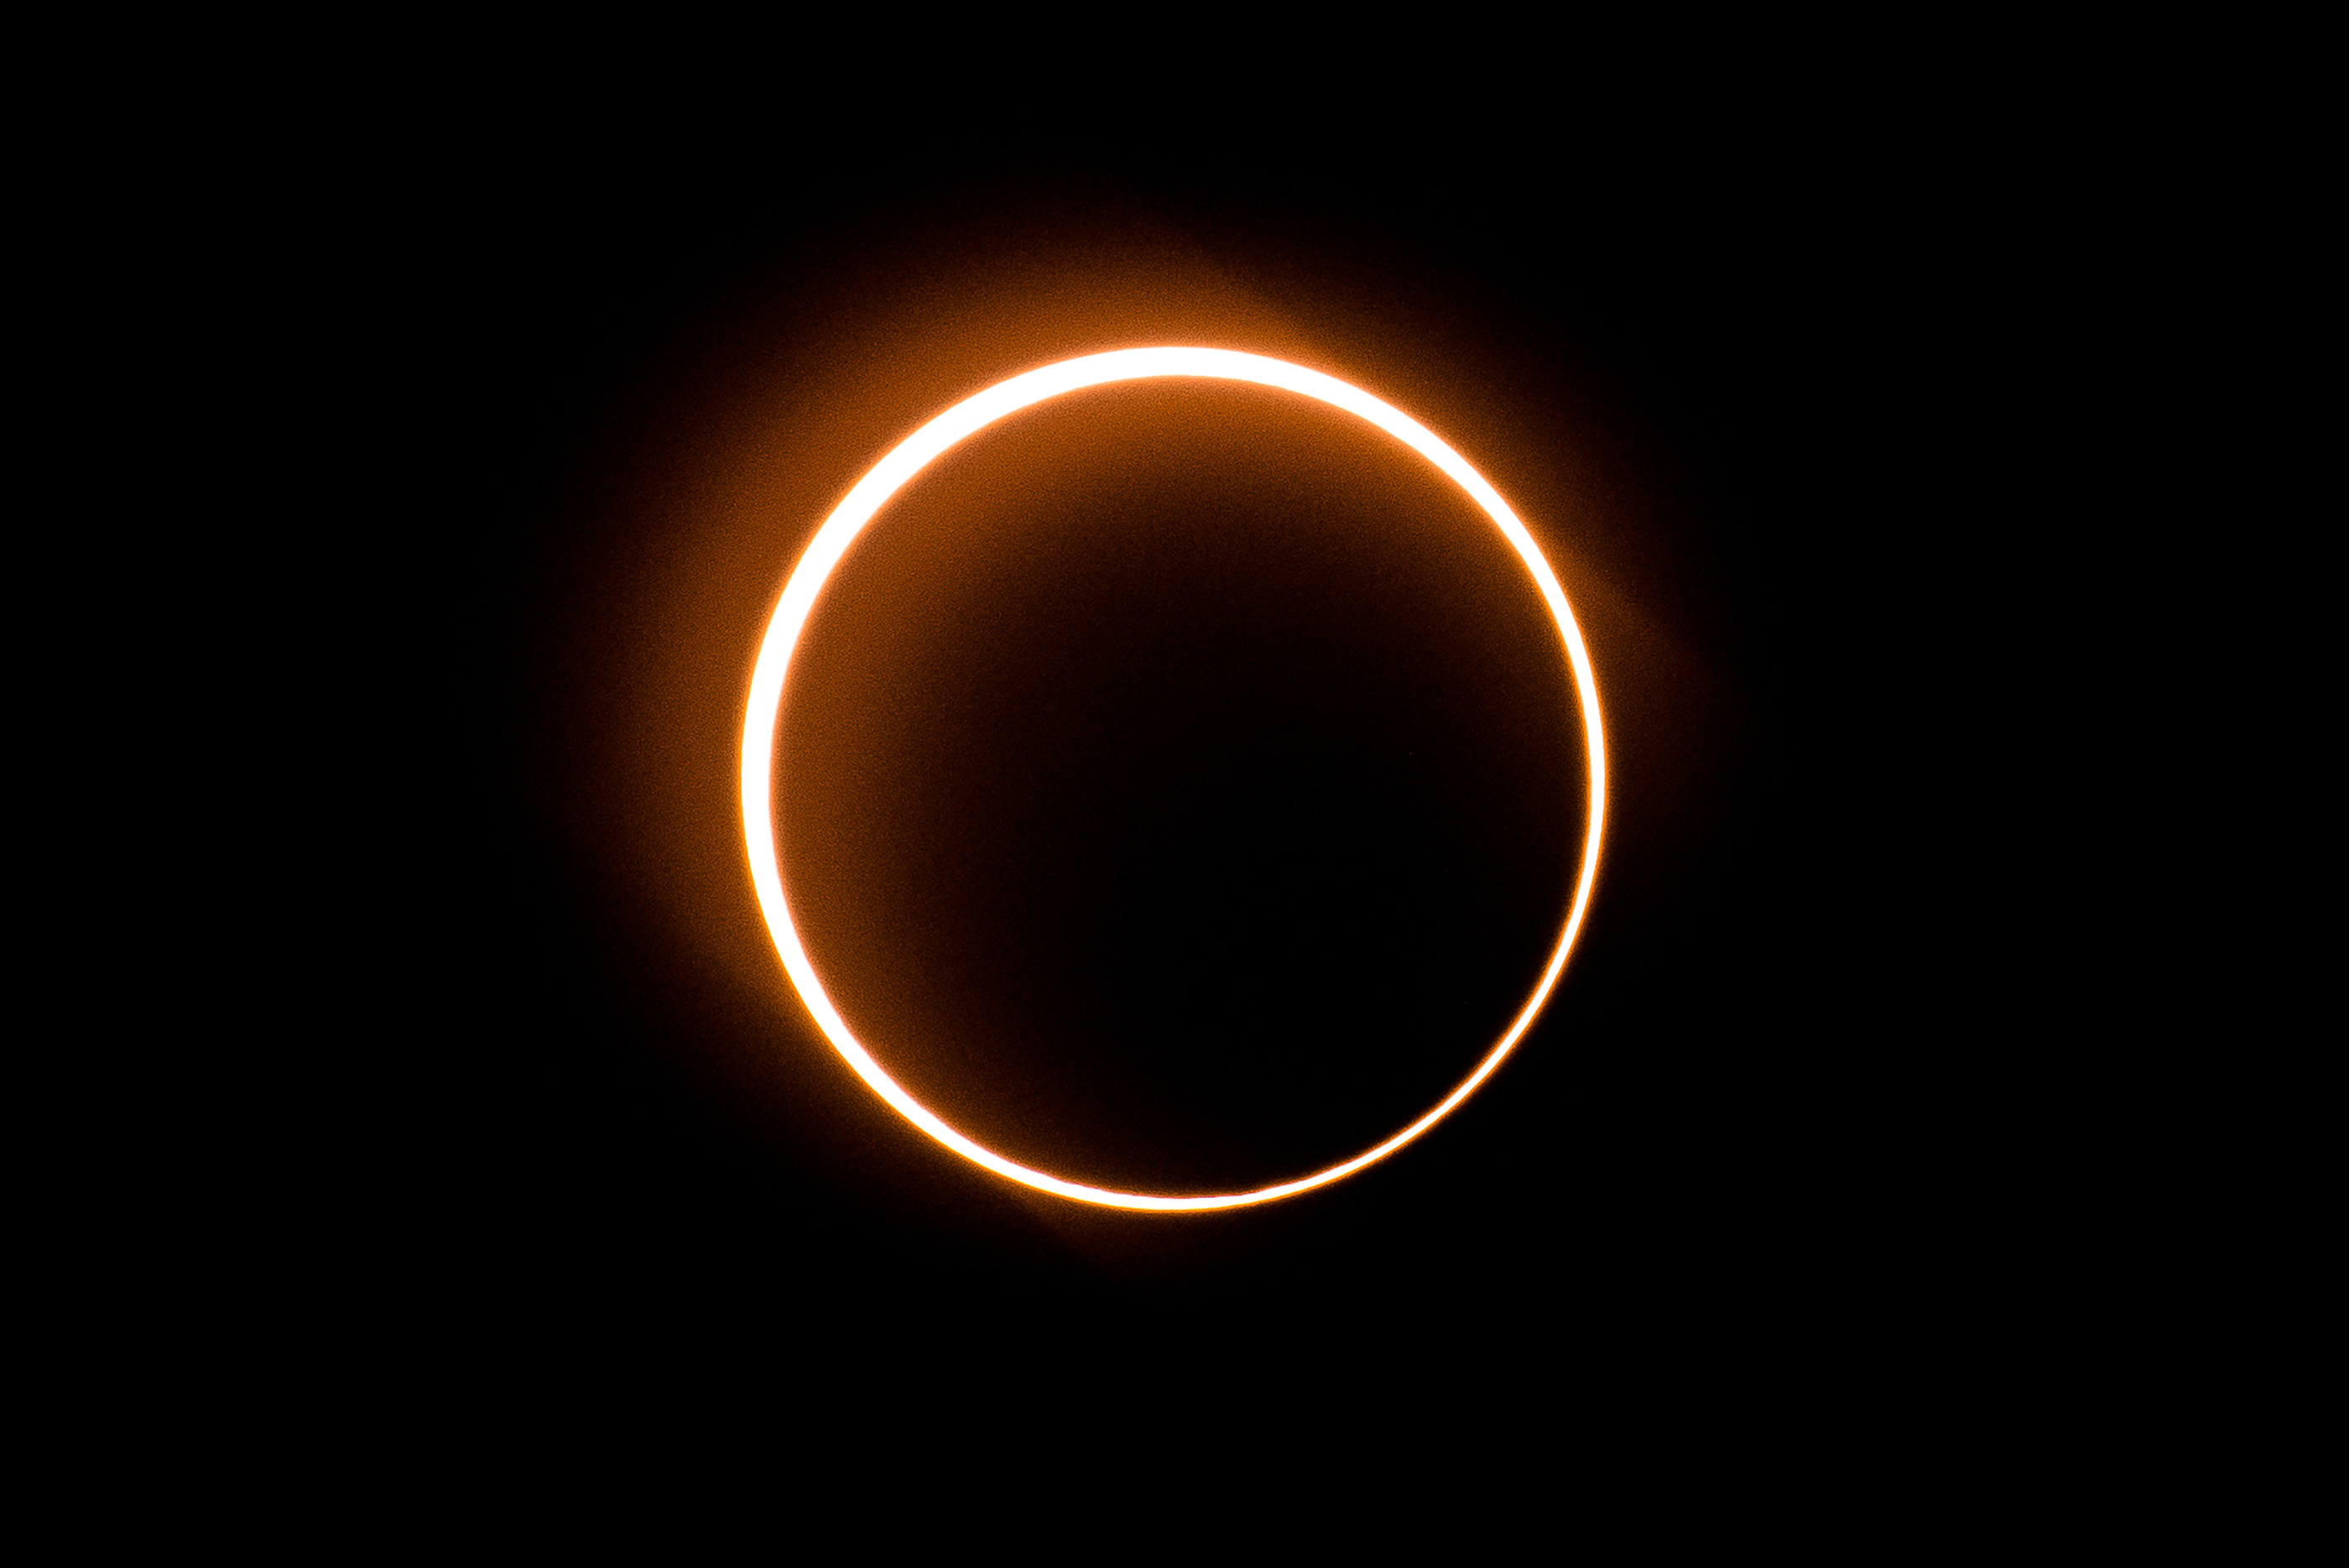 Next solar eclipse will occur in June 2020.